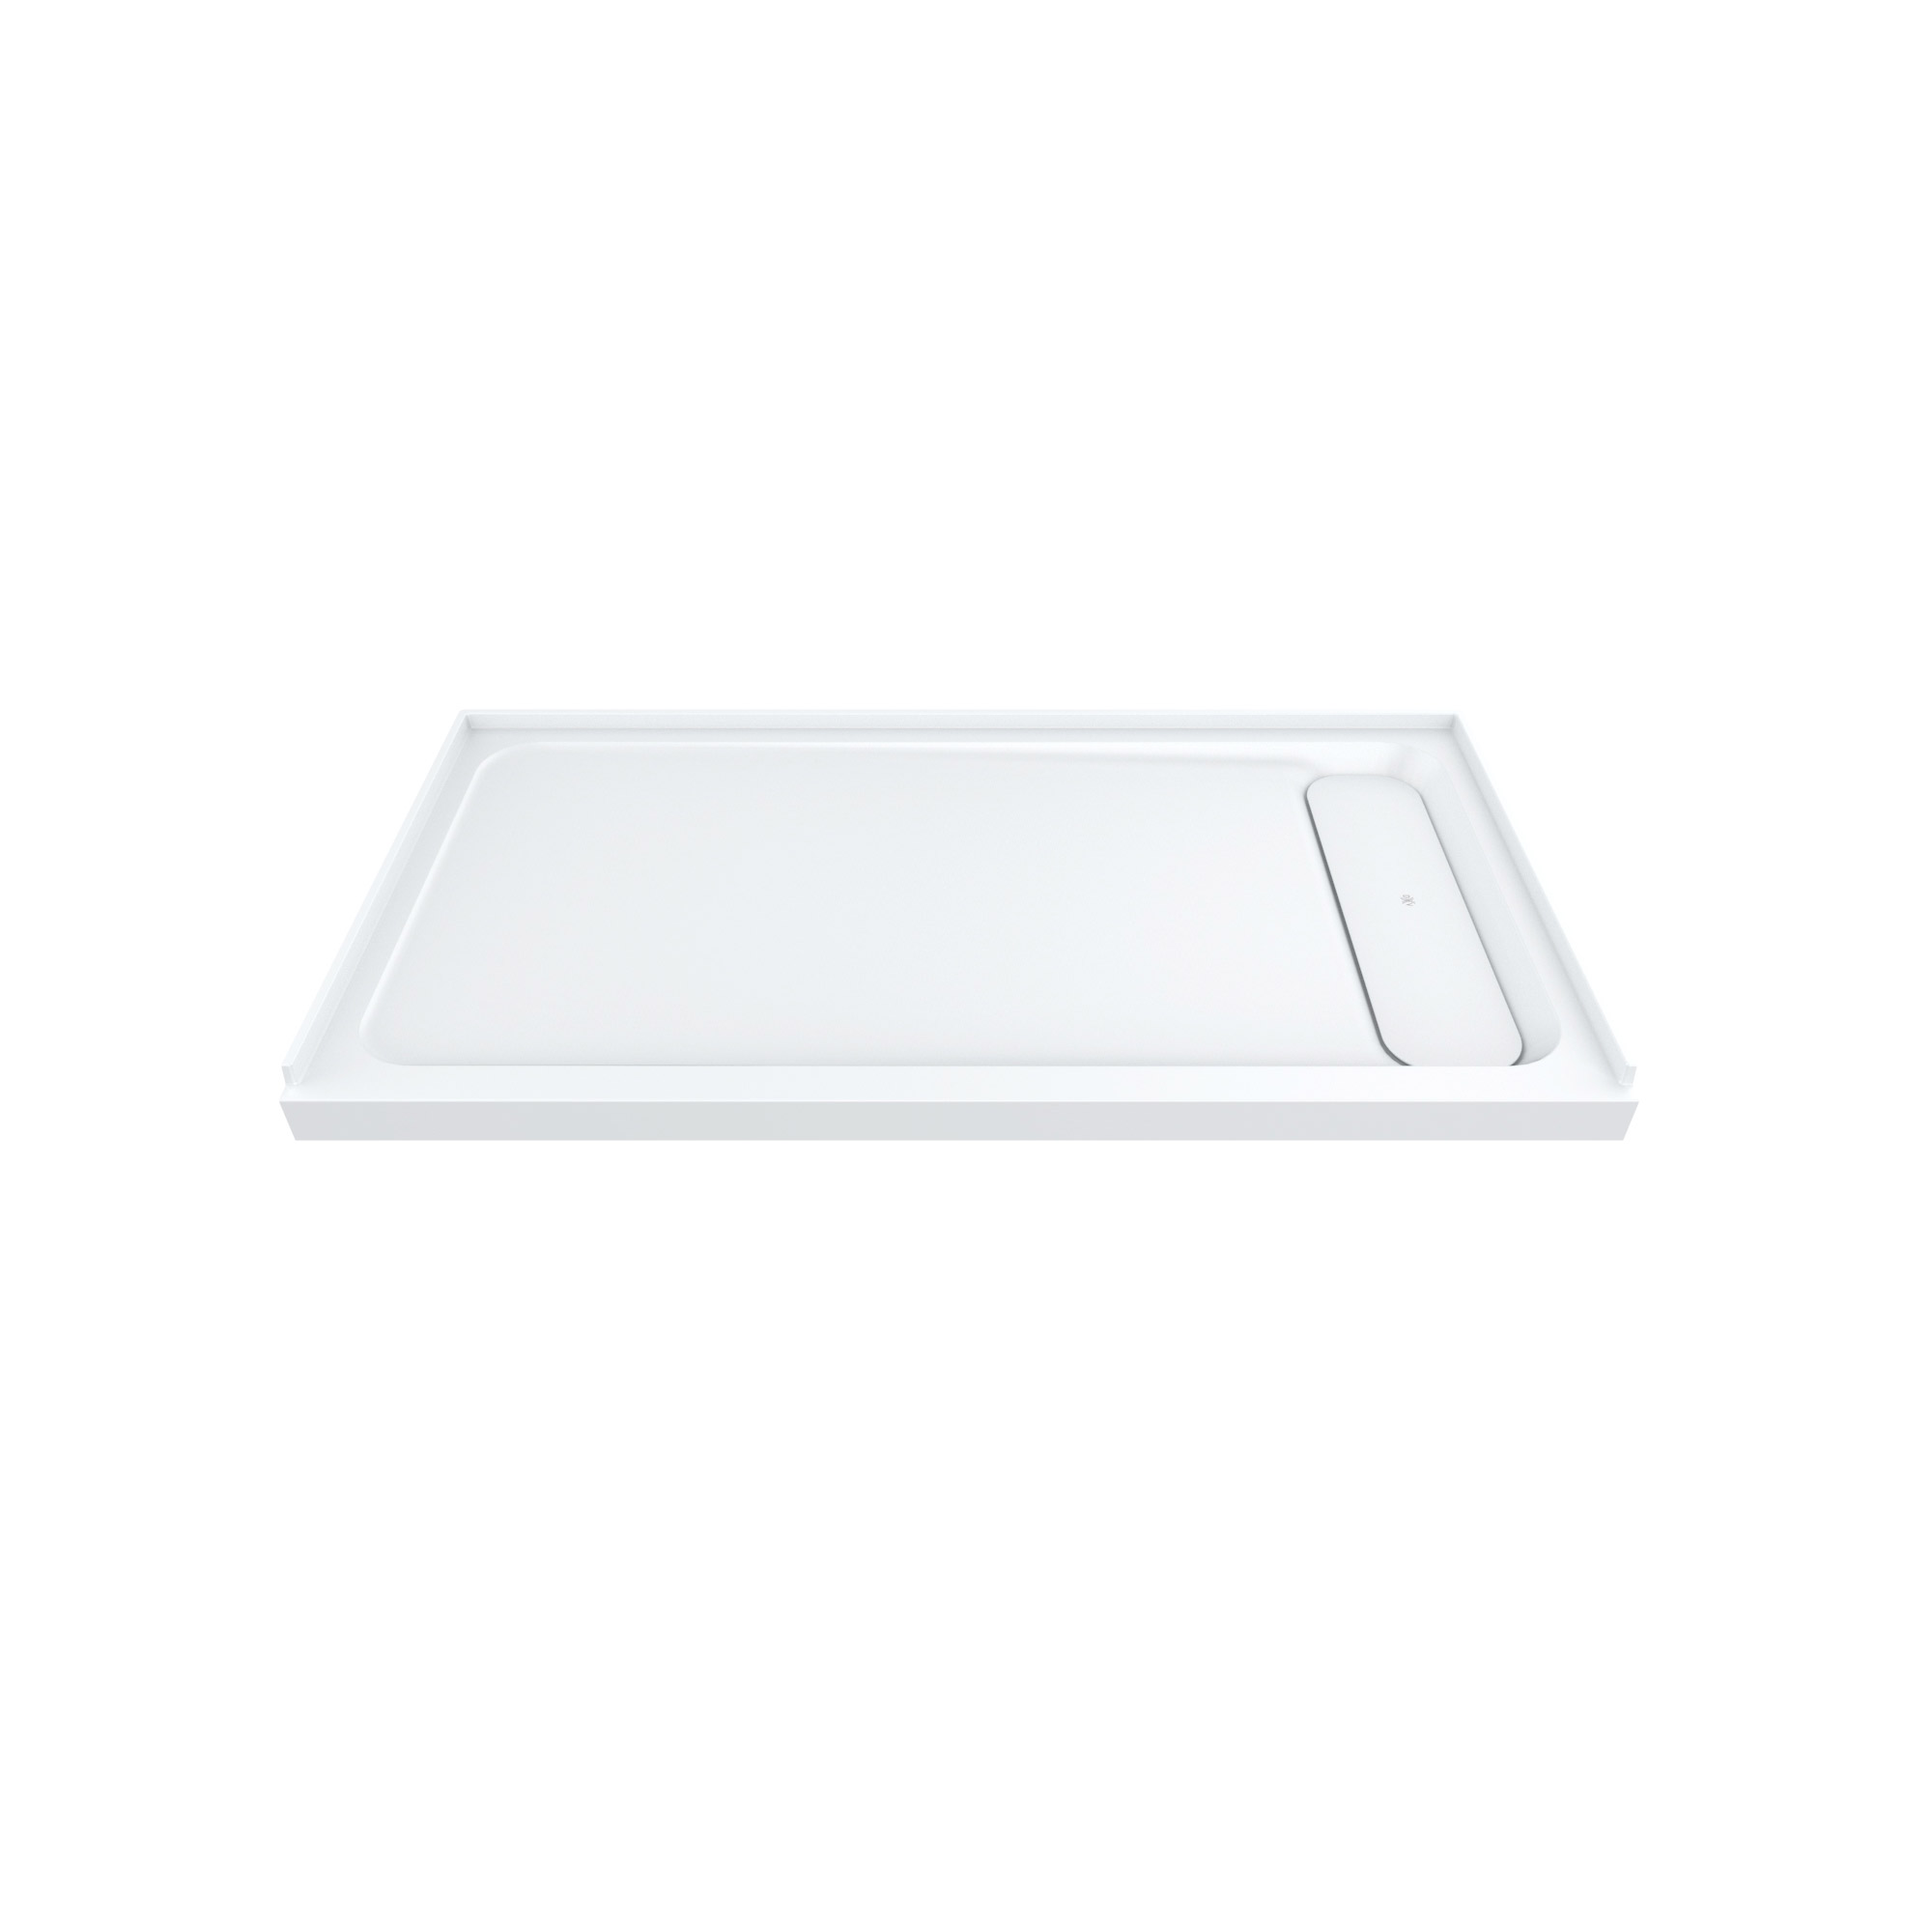 "DXV Modulus 60"" x 32"" Solid Surface Shower Base – Right Drain"